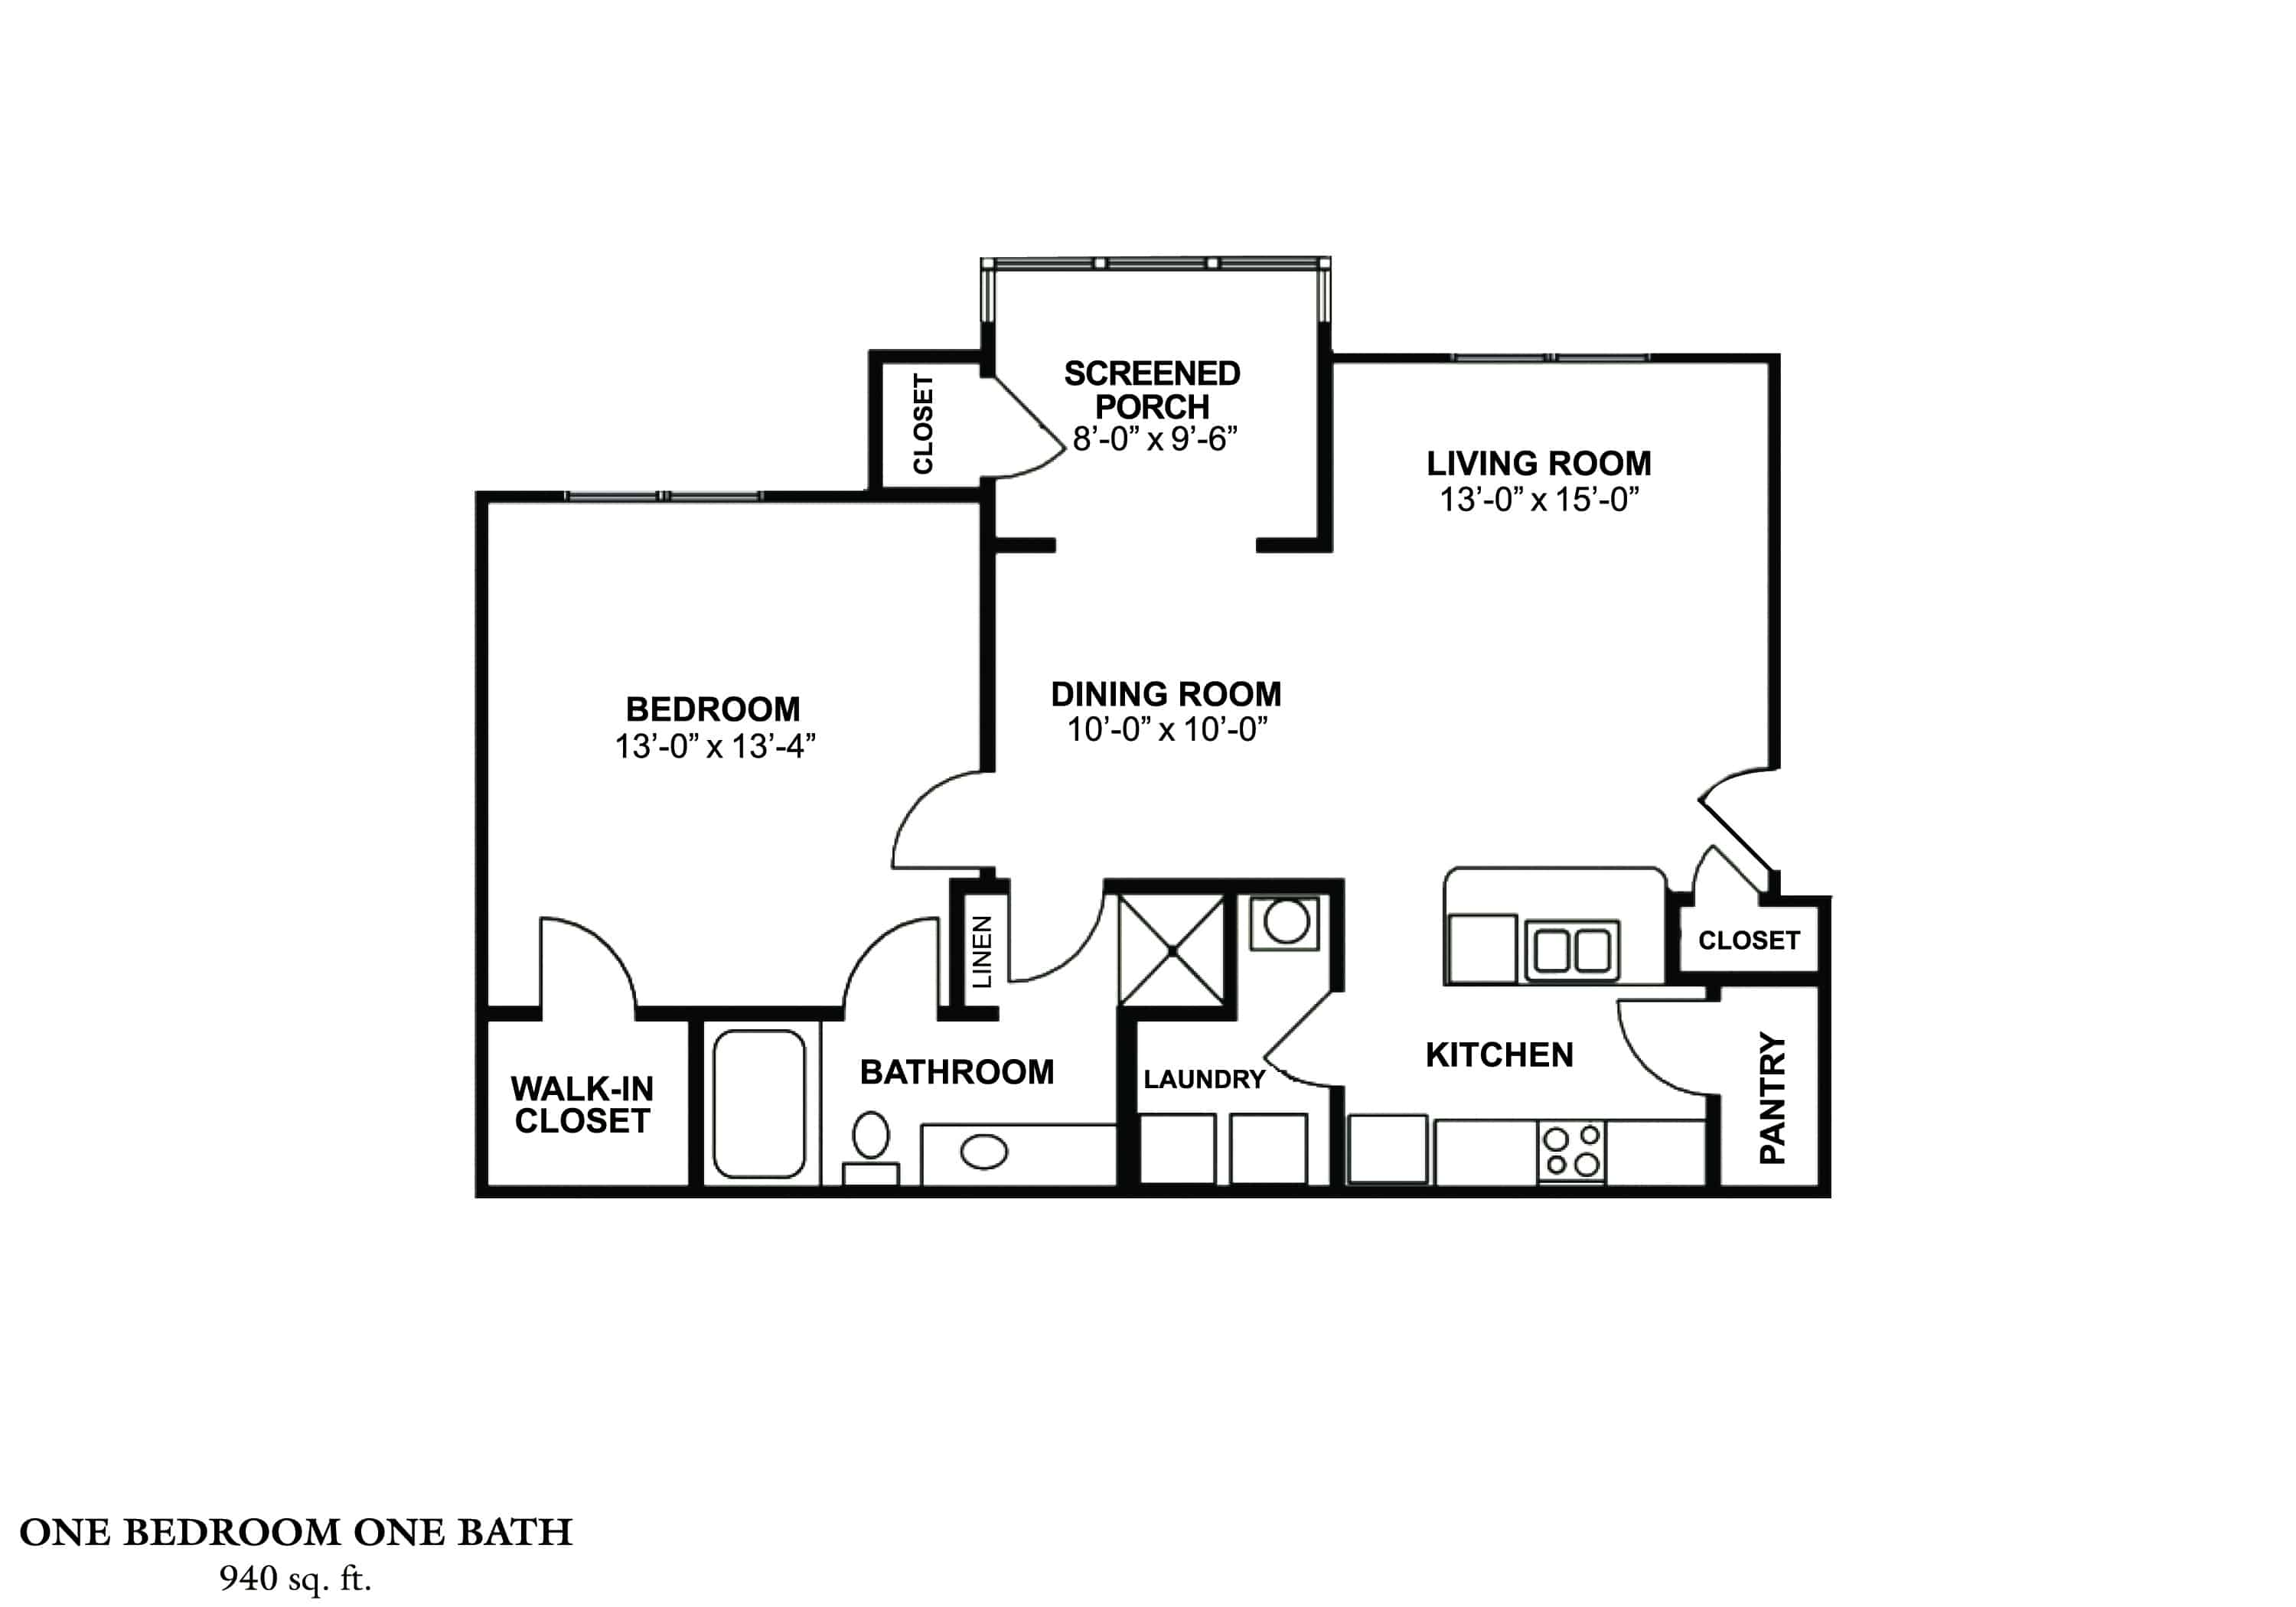 Greystone's Columbus Georgia Apartments have the best floor plans